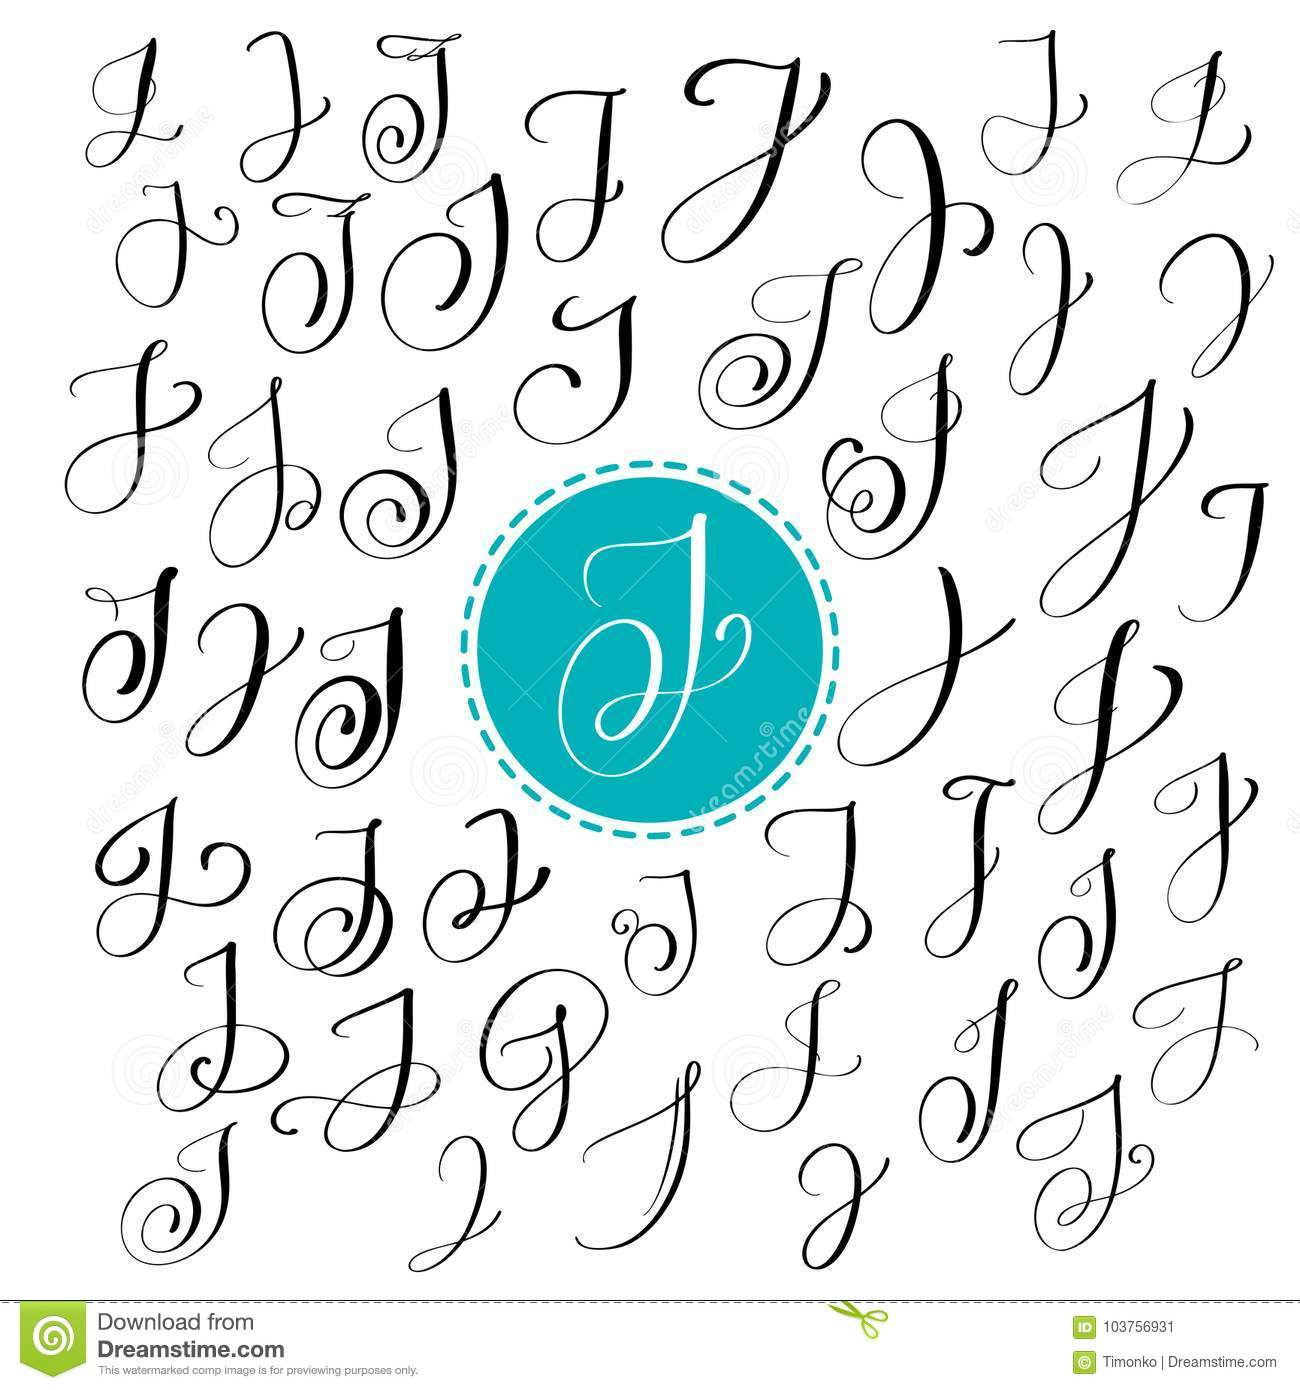 Set Of Hand Drawn Vector Calligraphy Letter J. Script Font